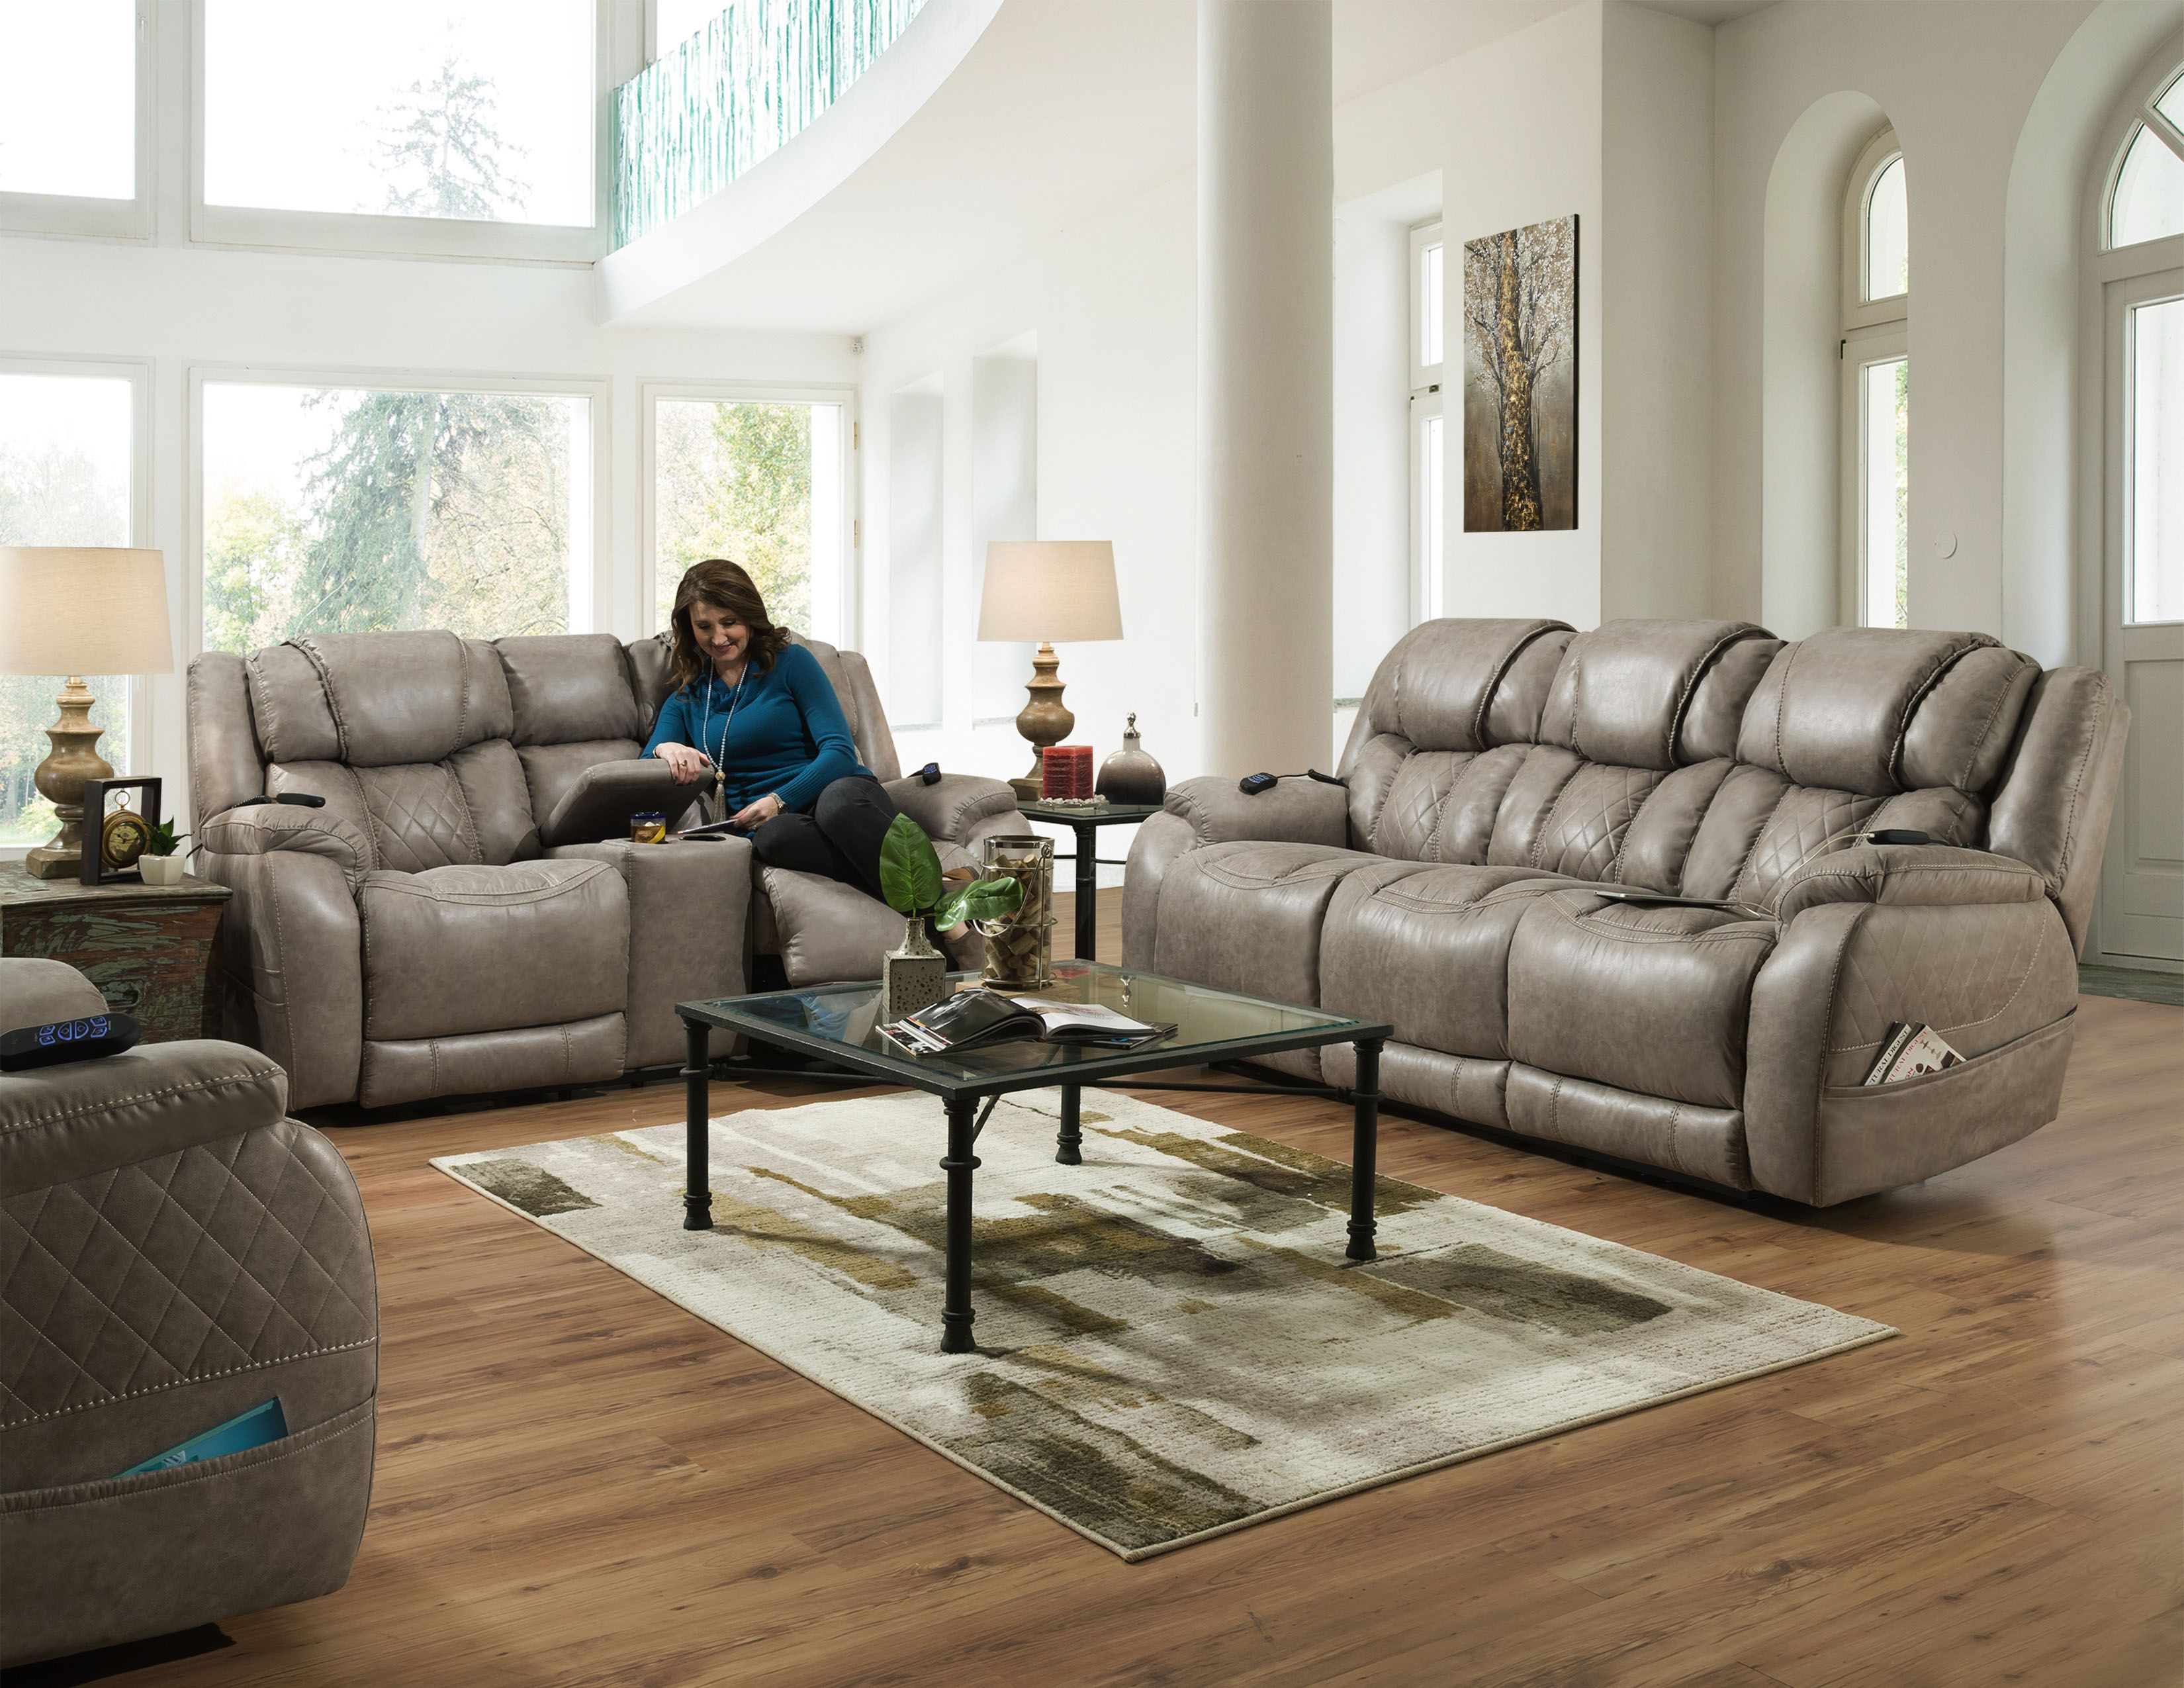 The Daytona Power Activated Reclining Sofa Set From Homestretch Offers Style And Comfort And So Much More Comfort In 2020 Power Reclining Sofa Reclining Sofa Sofa Set